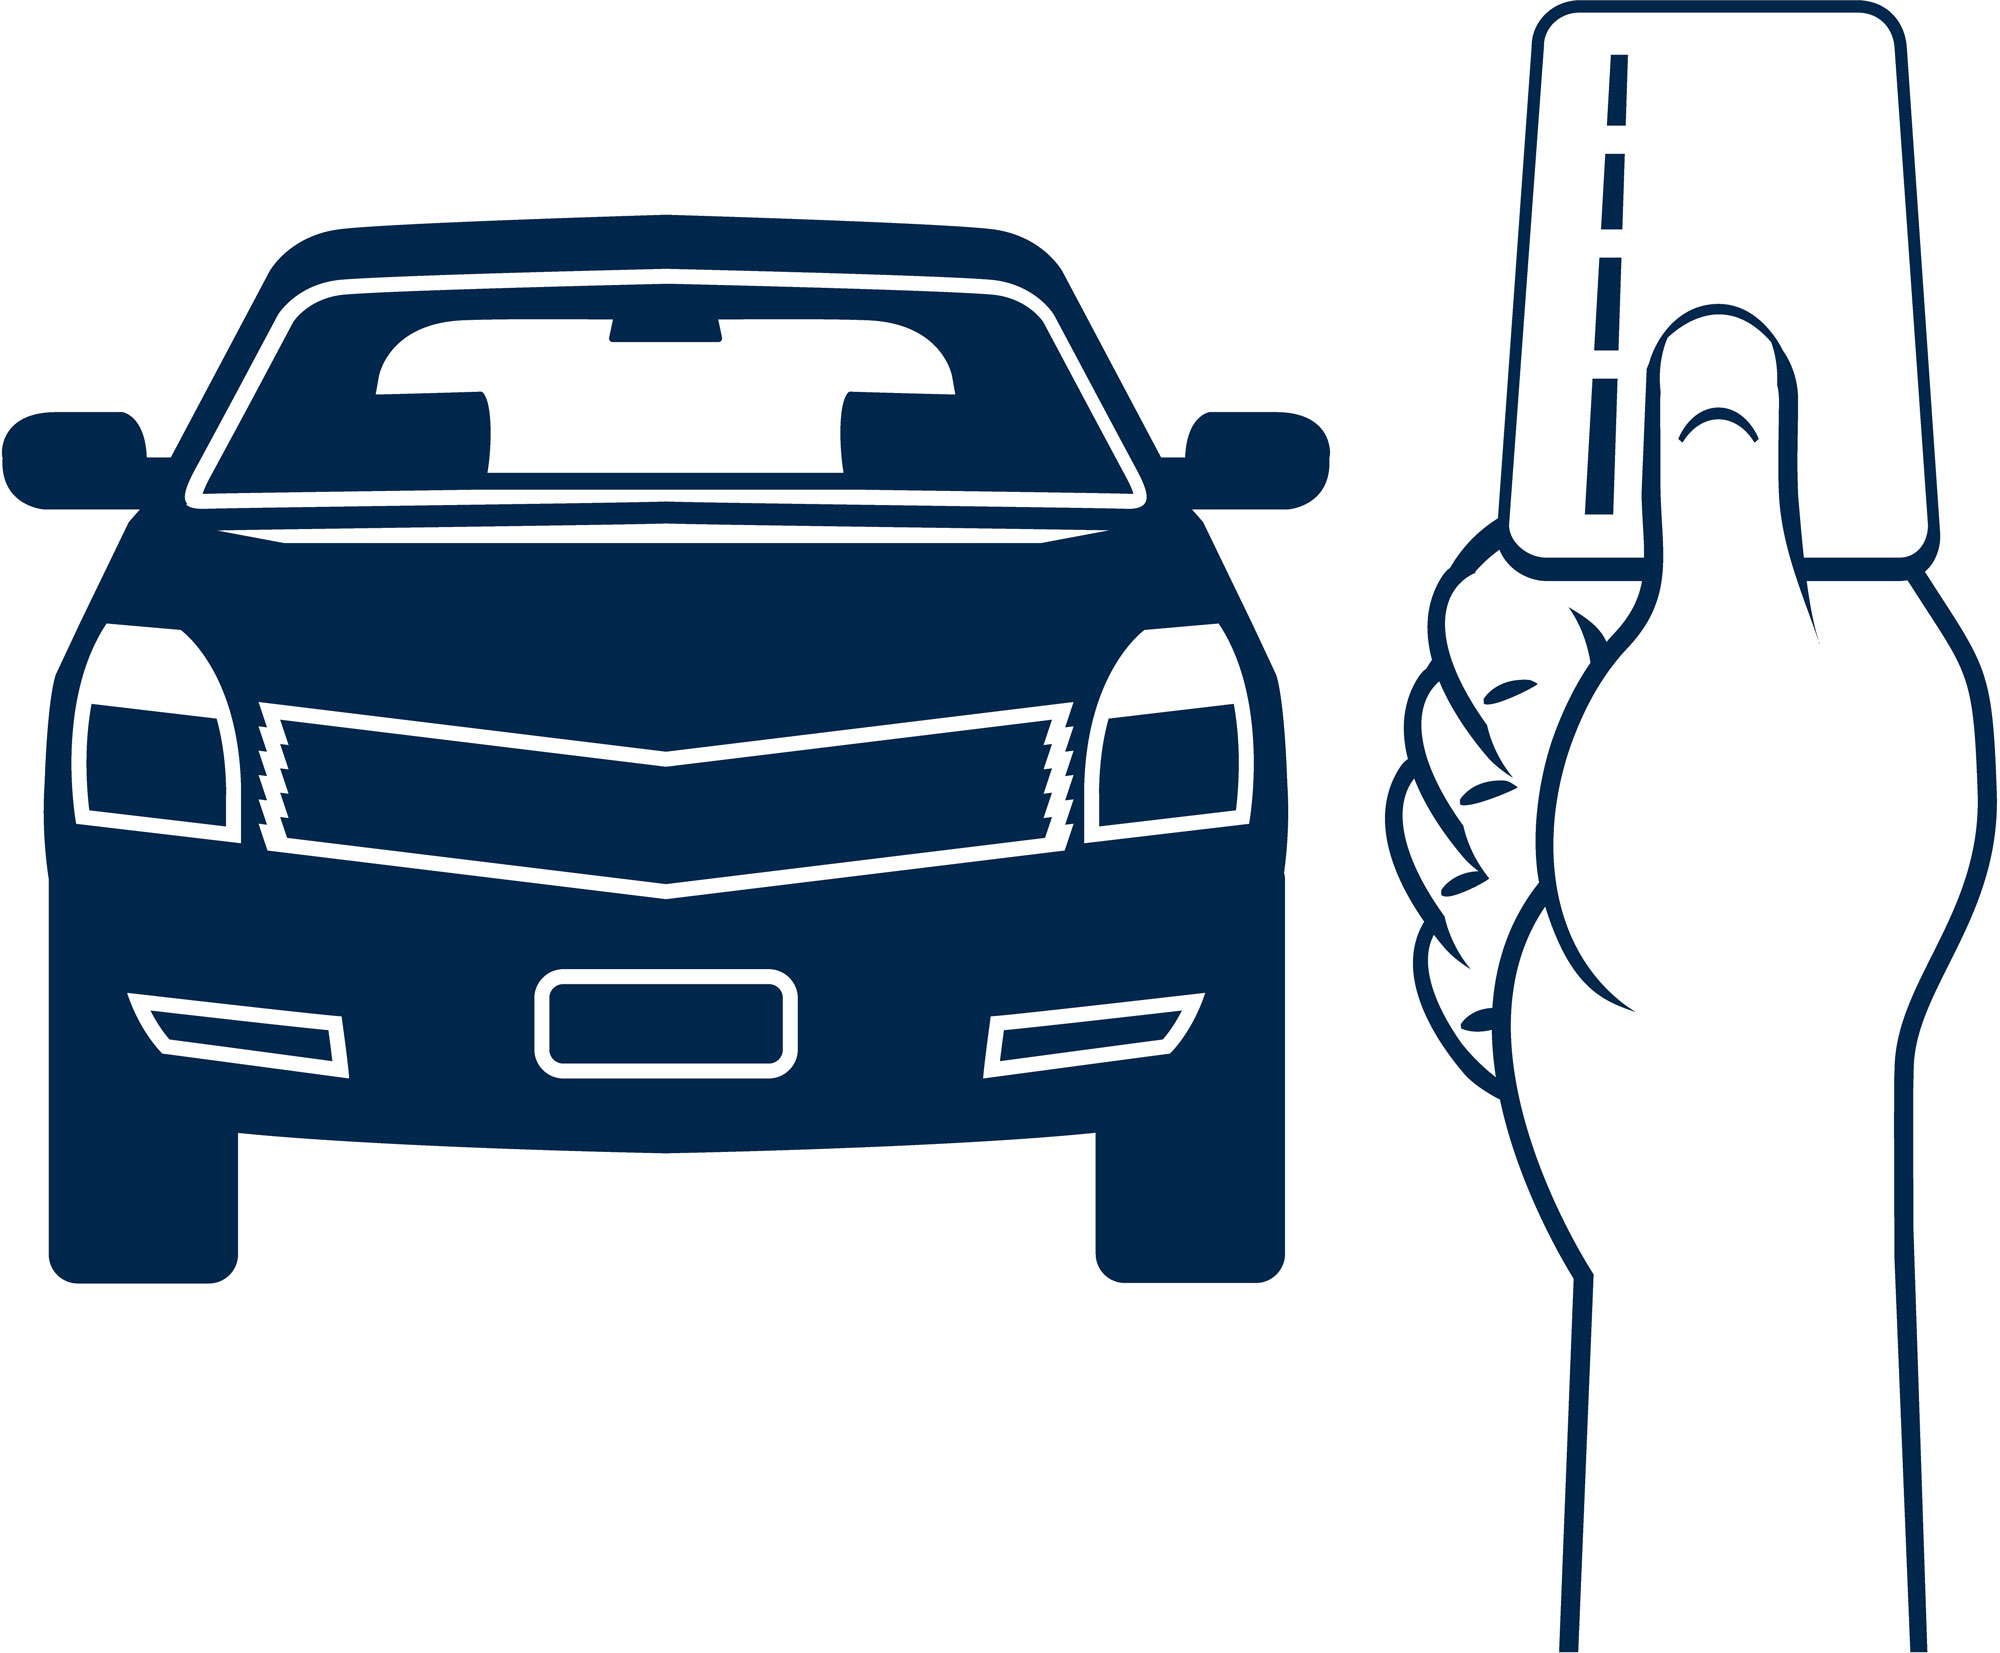 Car and card in hand illustration. (stock image)